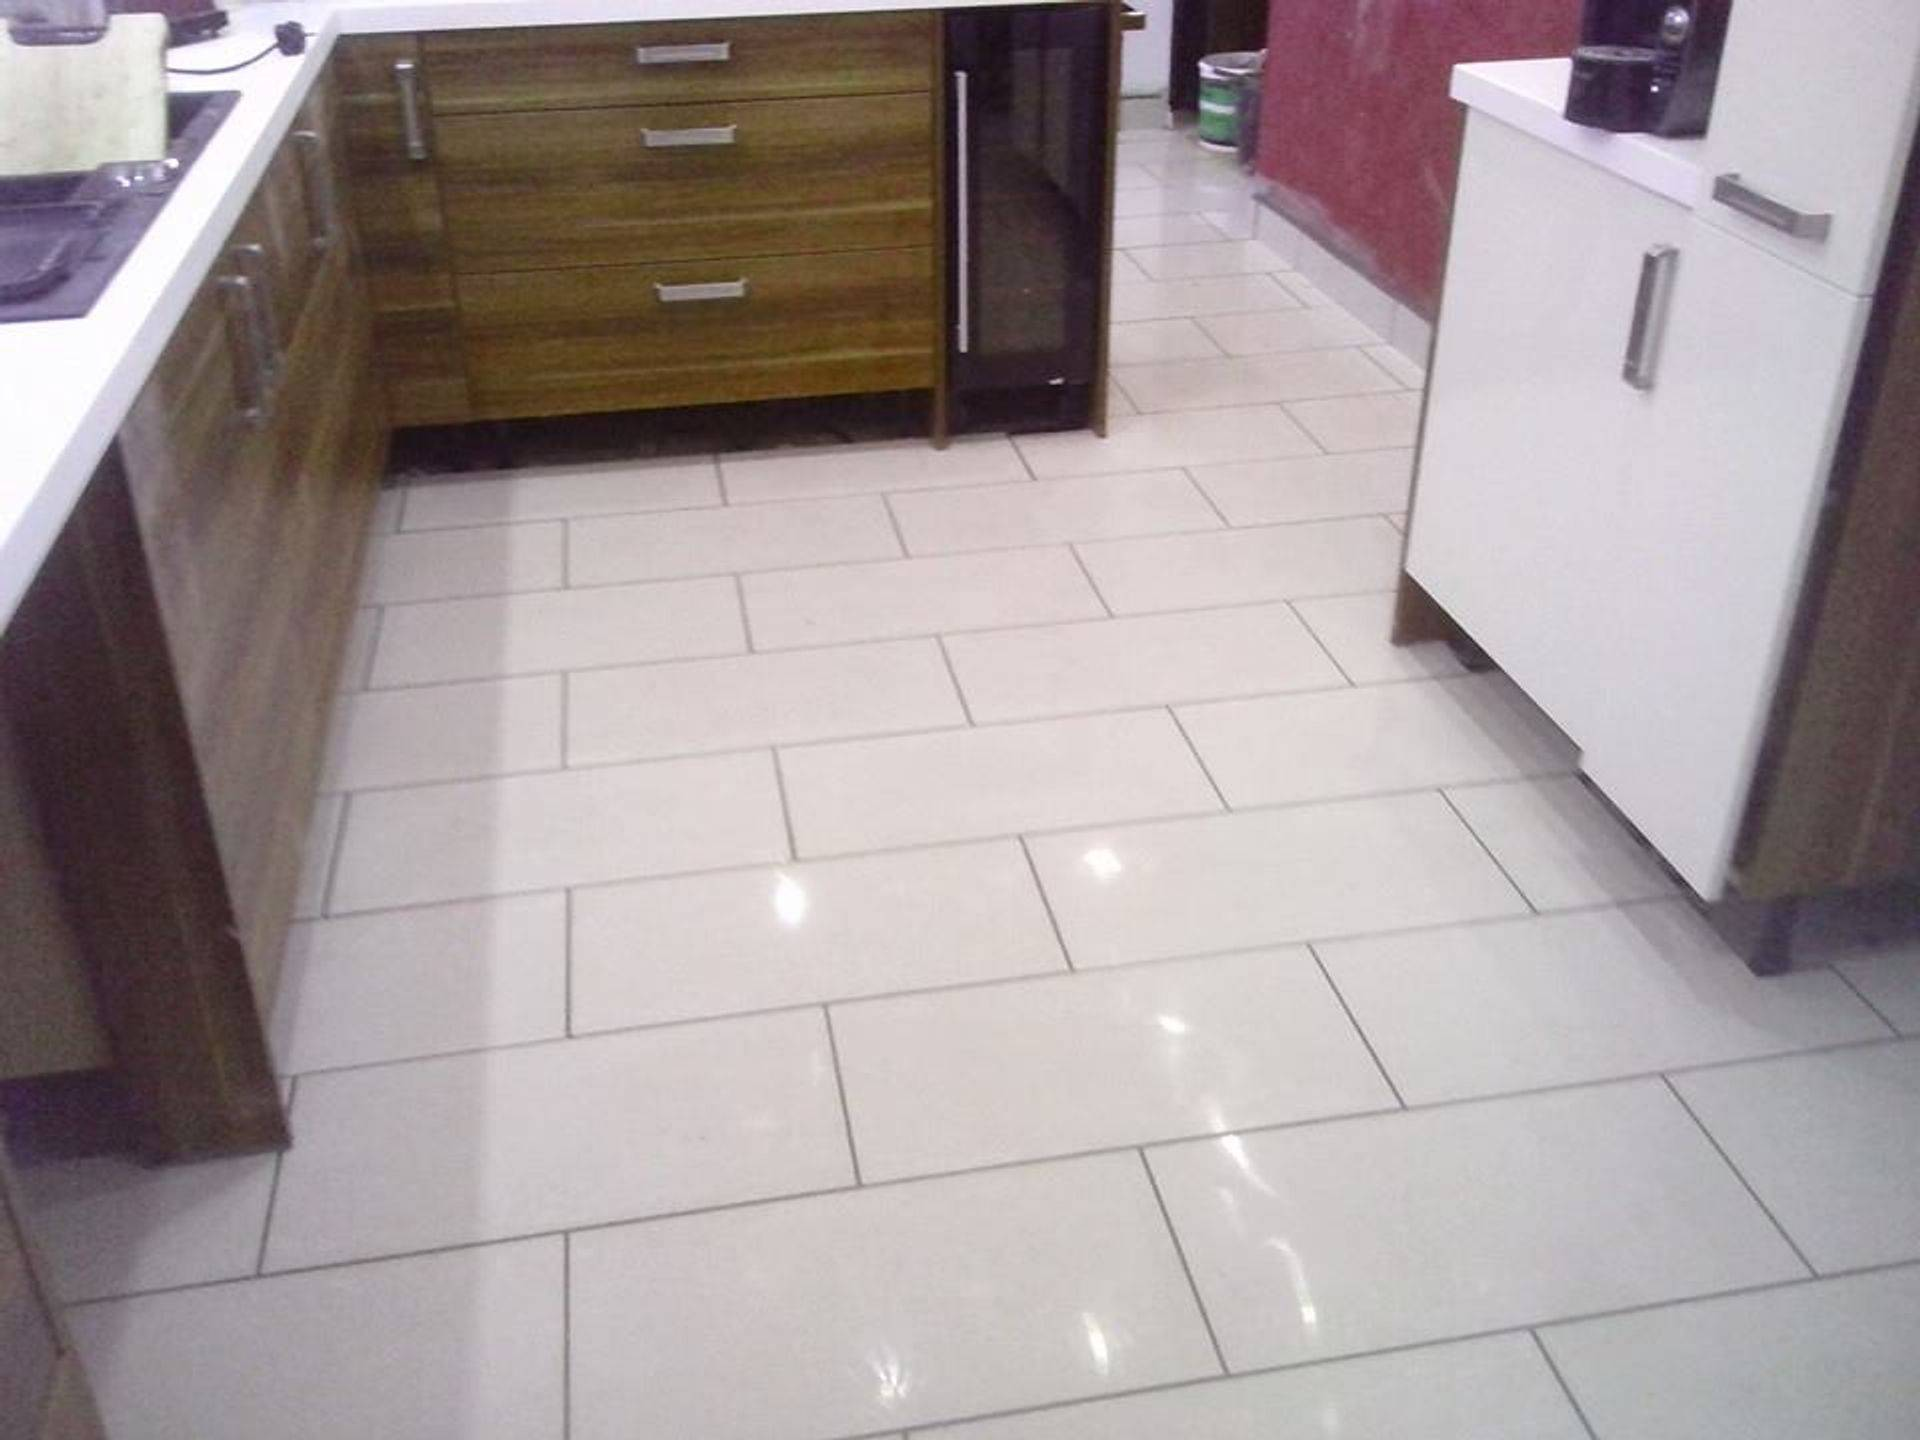 Tiling of kitchen floor in wordsley, self leveled and tiled finish.